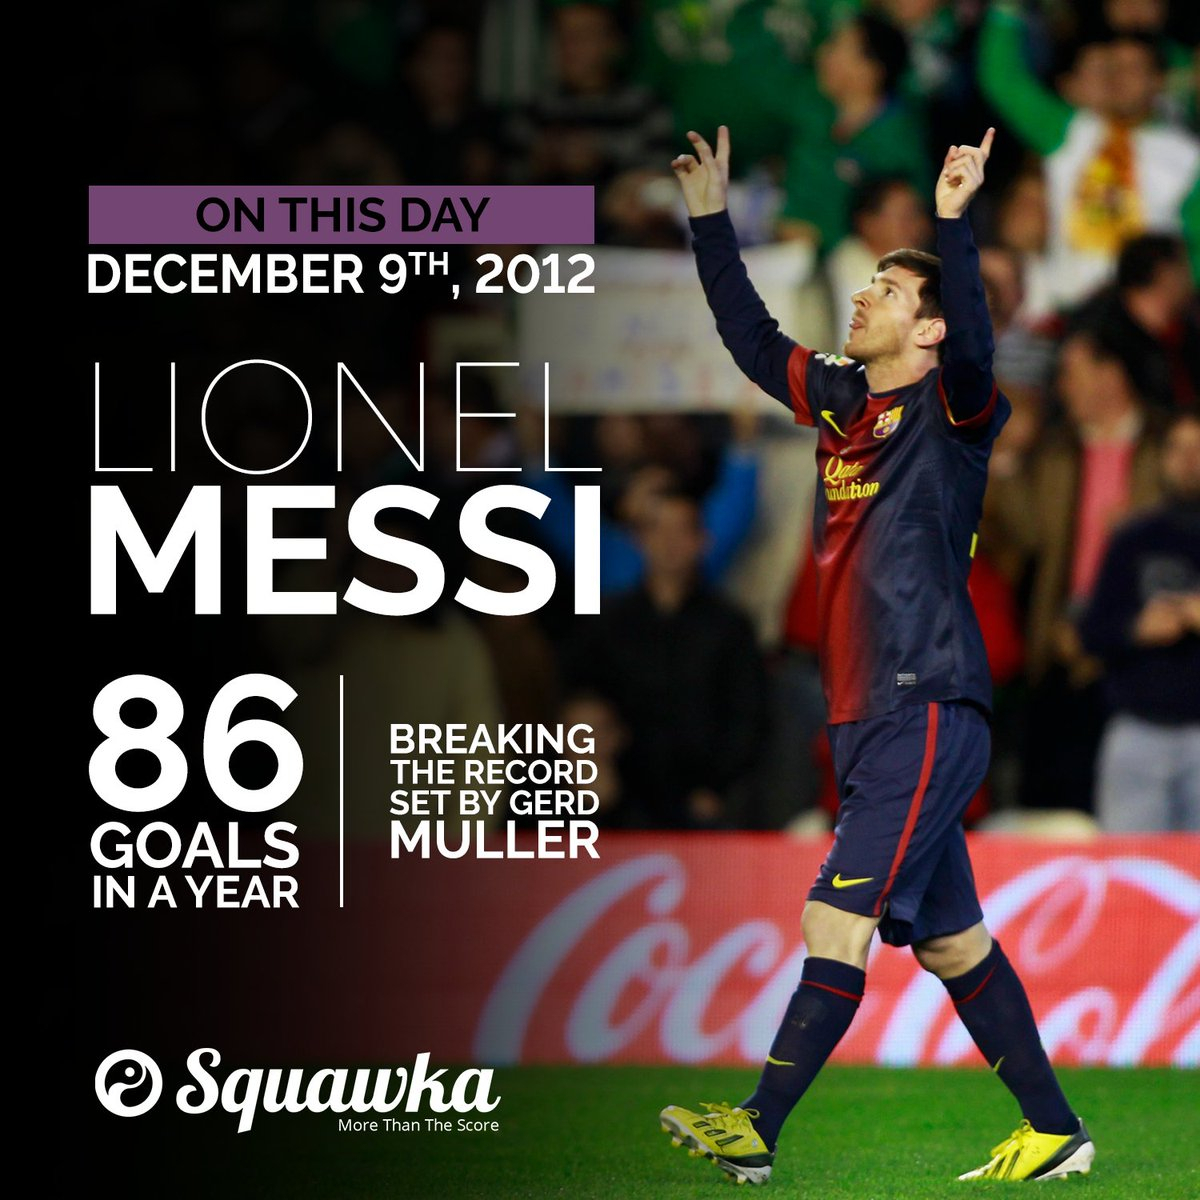 Lionel Messi Gerd : Day Lionel Messi Scored Goal Breaking for Messi Calendar Year Goals